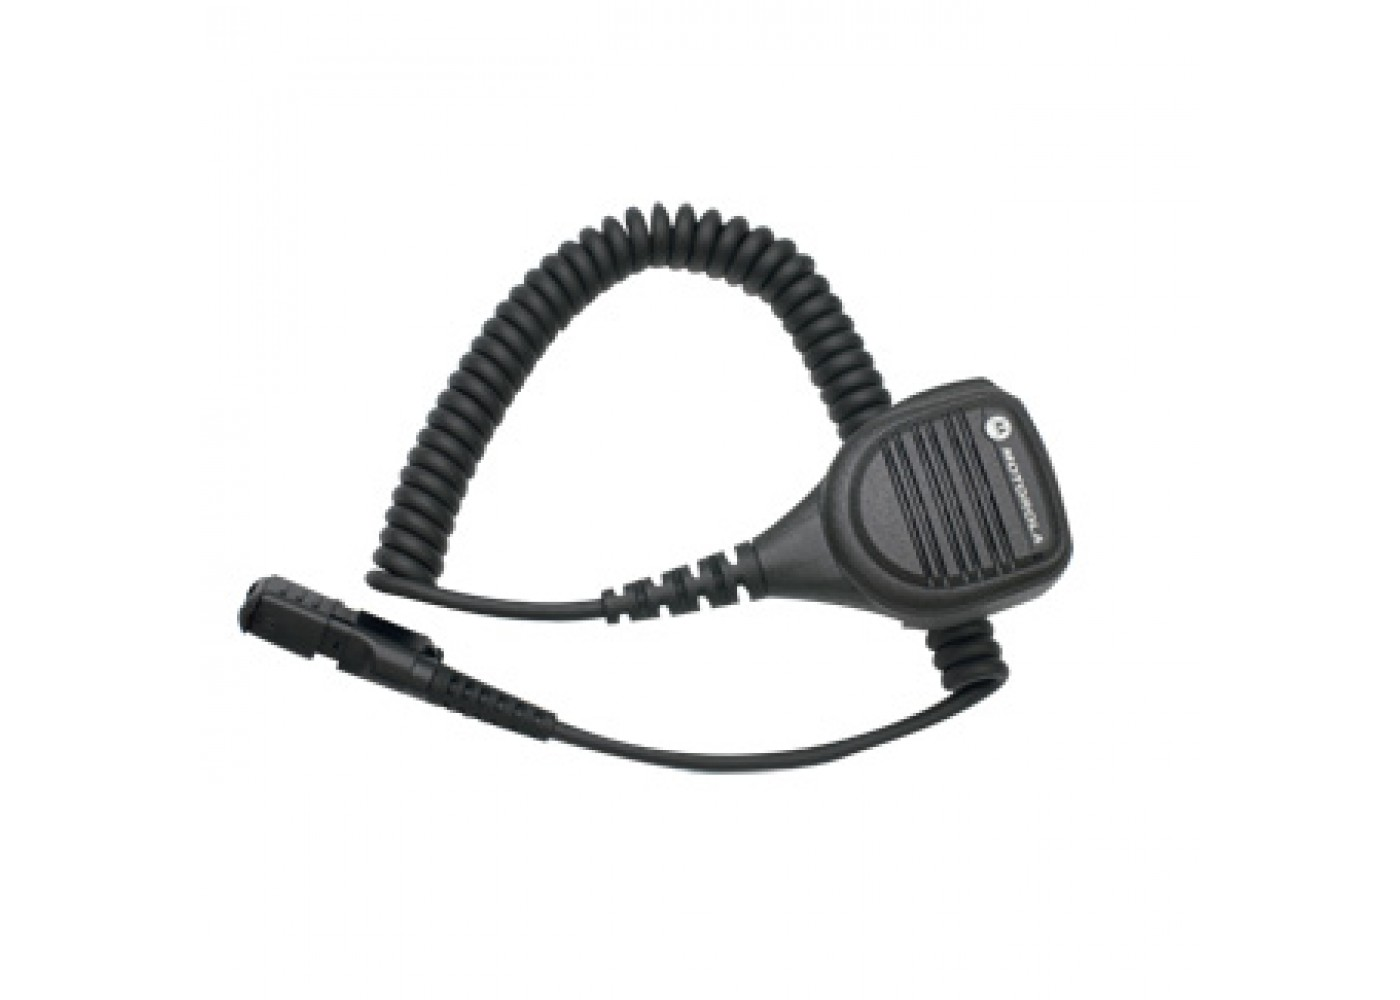 PMMN4075 Small remote speaker microphone